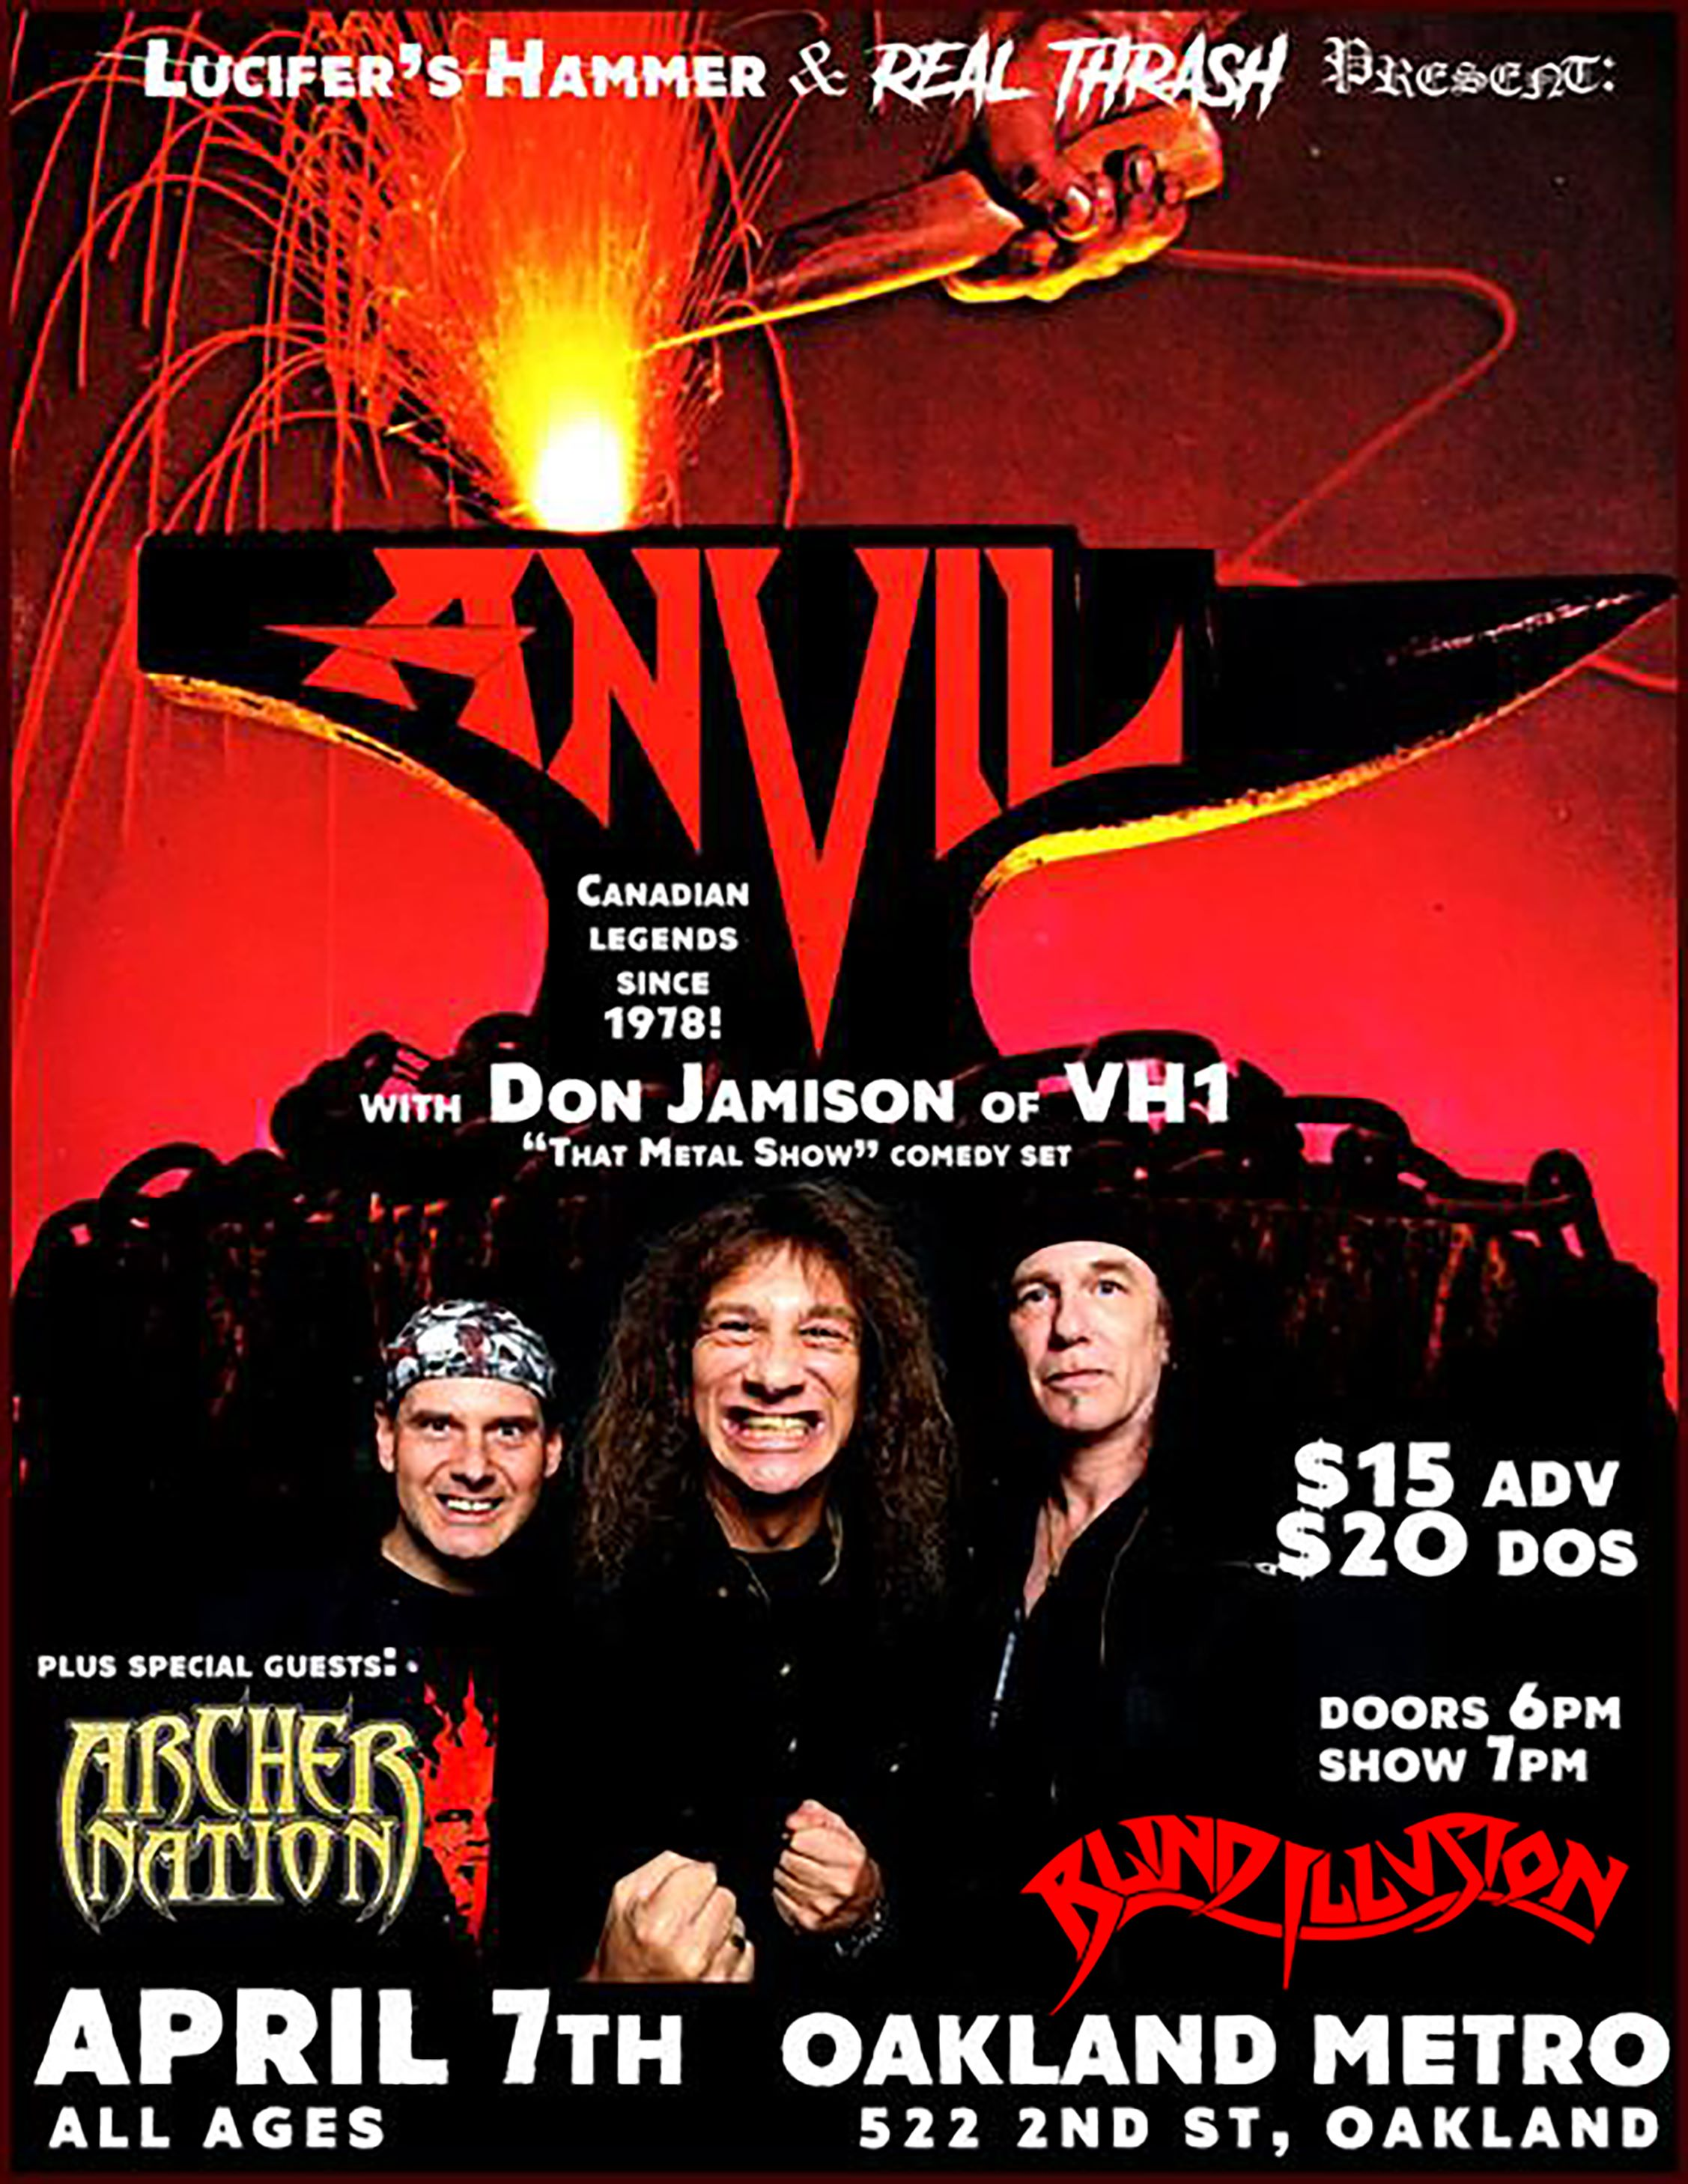 Concert poster with hand and hammer striking anvil